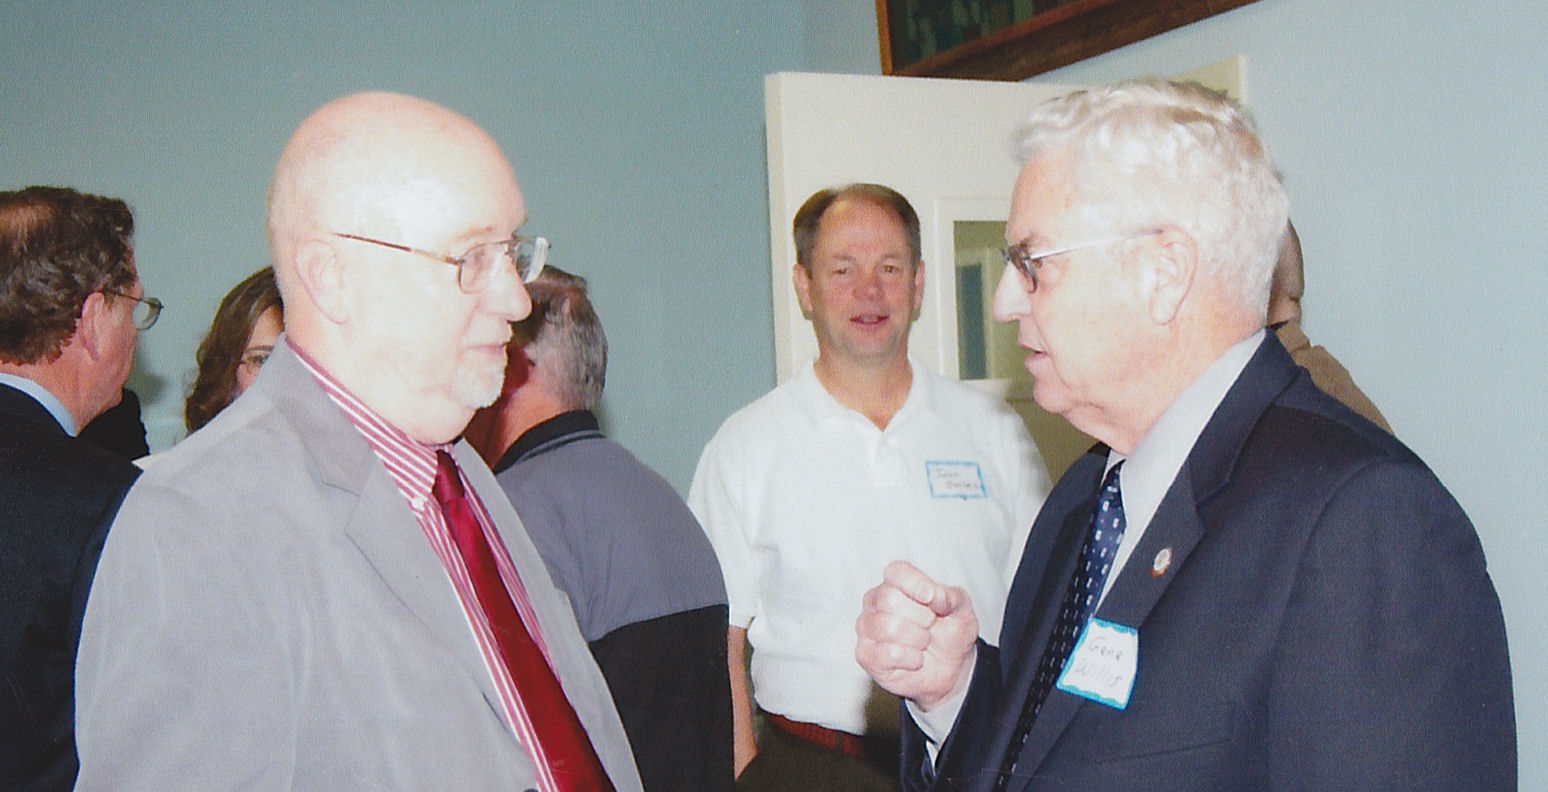 SGM (Ret) Charles Locke chatting with DMS Admin ICON MSG (Ret) Gene Willis - in the background is John Sarles